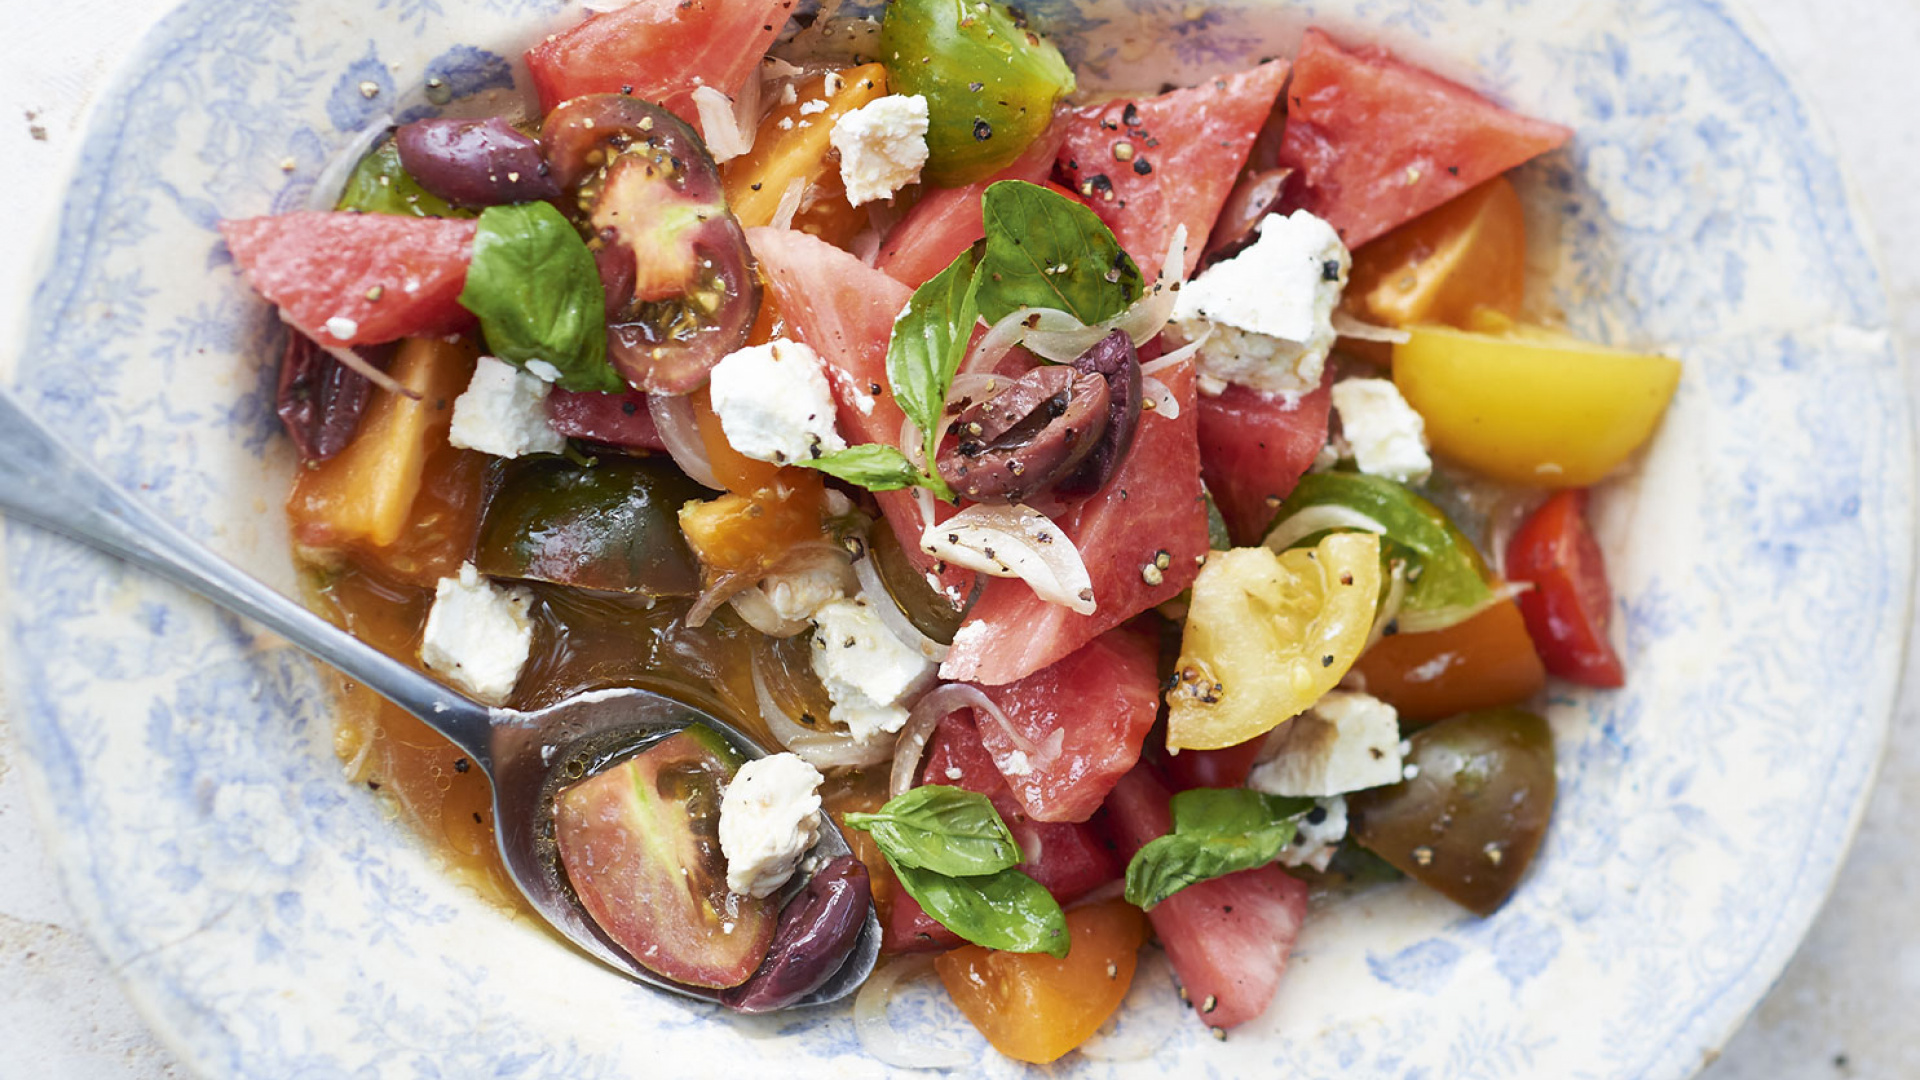 Watermelon and tomato salad with goat's cheese.  Photograph by David Munns